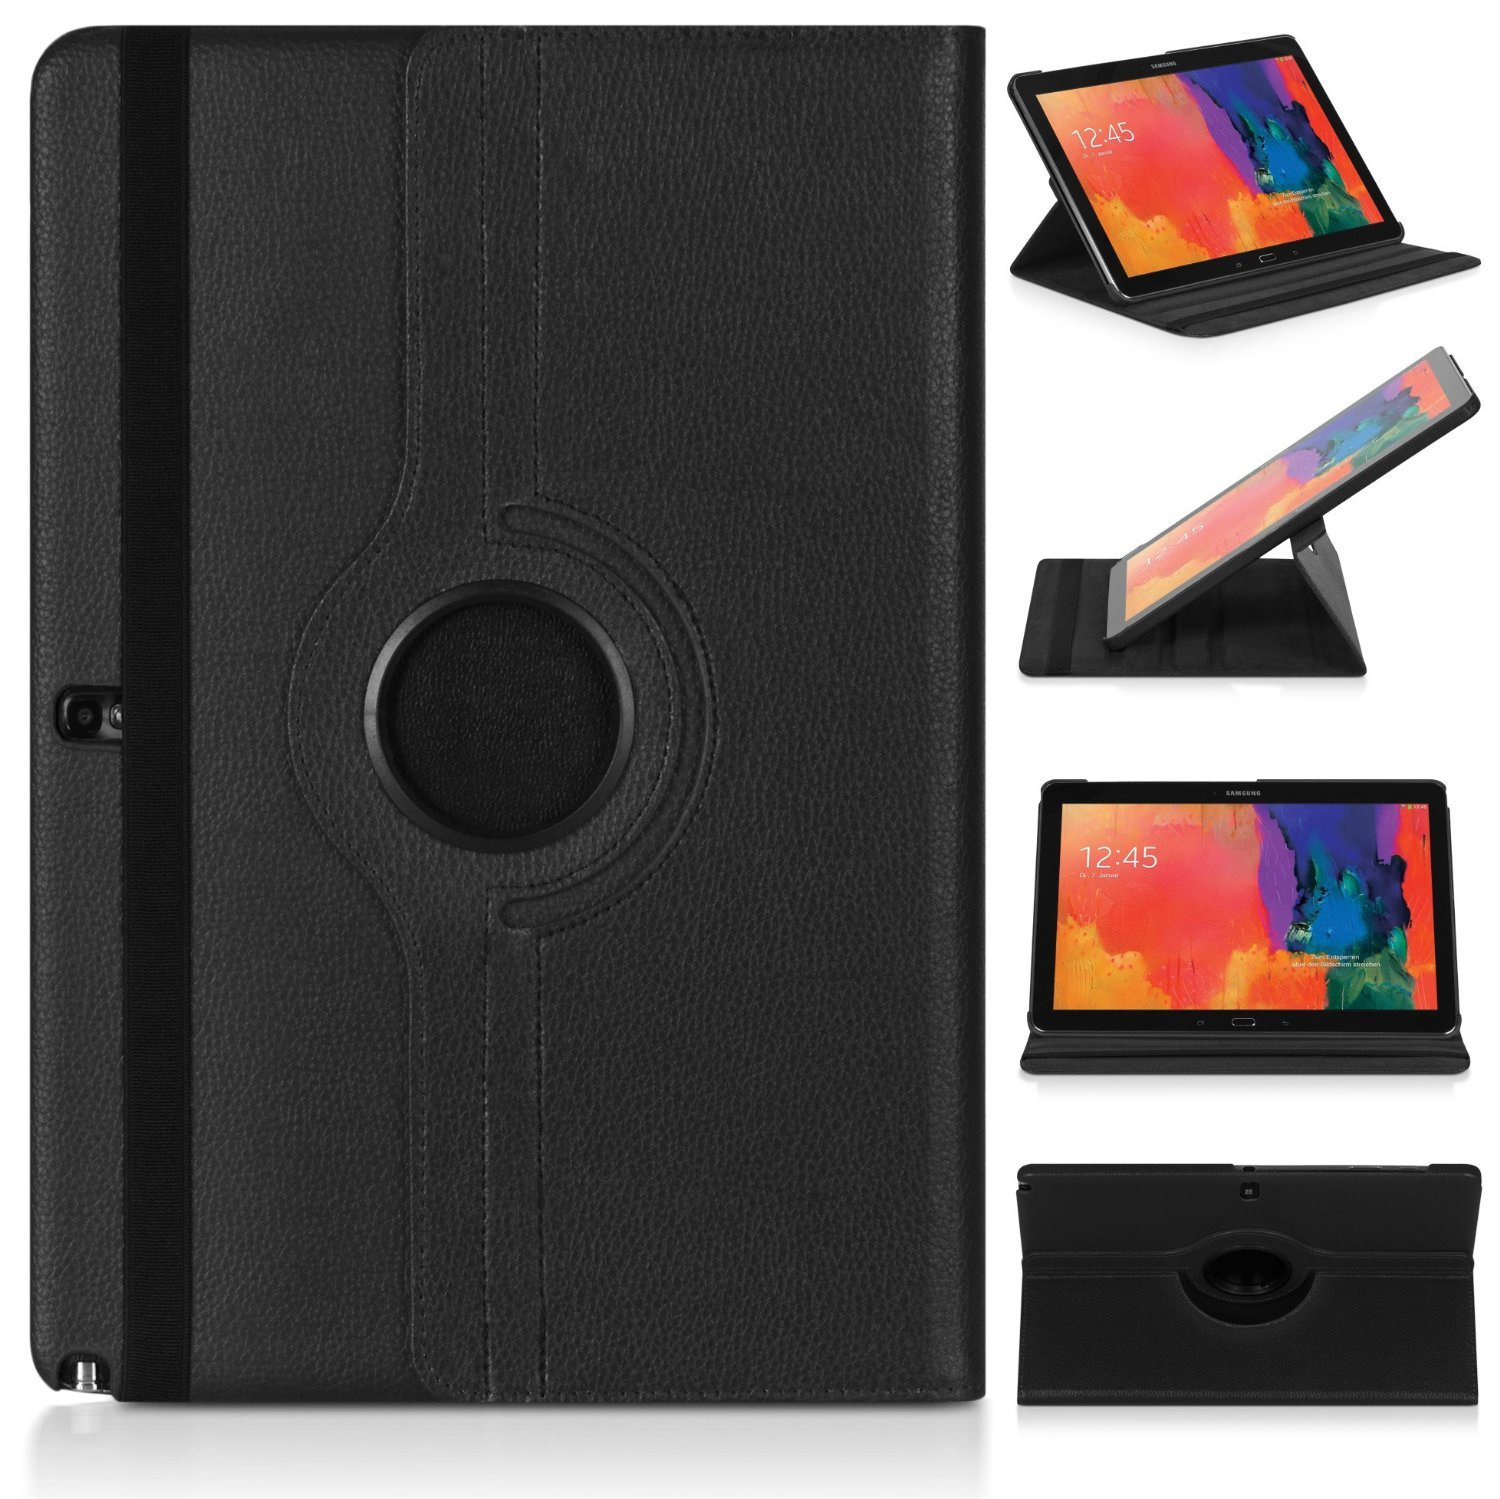 Case For Samsung Note Pro 12.2 P900 P901 P905 Cover Folio Pu Leather Stand Smart Tablet Capa Cases P900 P901 P905 12.2 Inch 2014